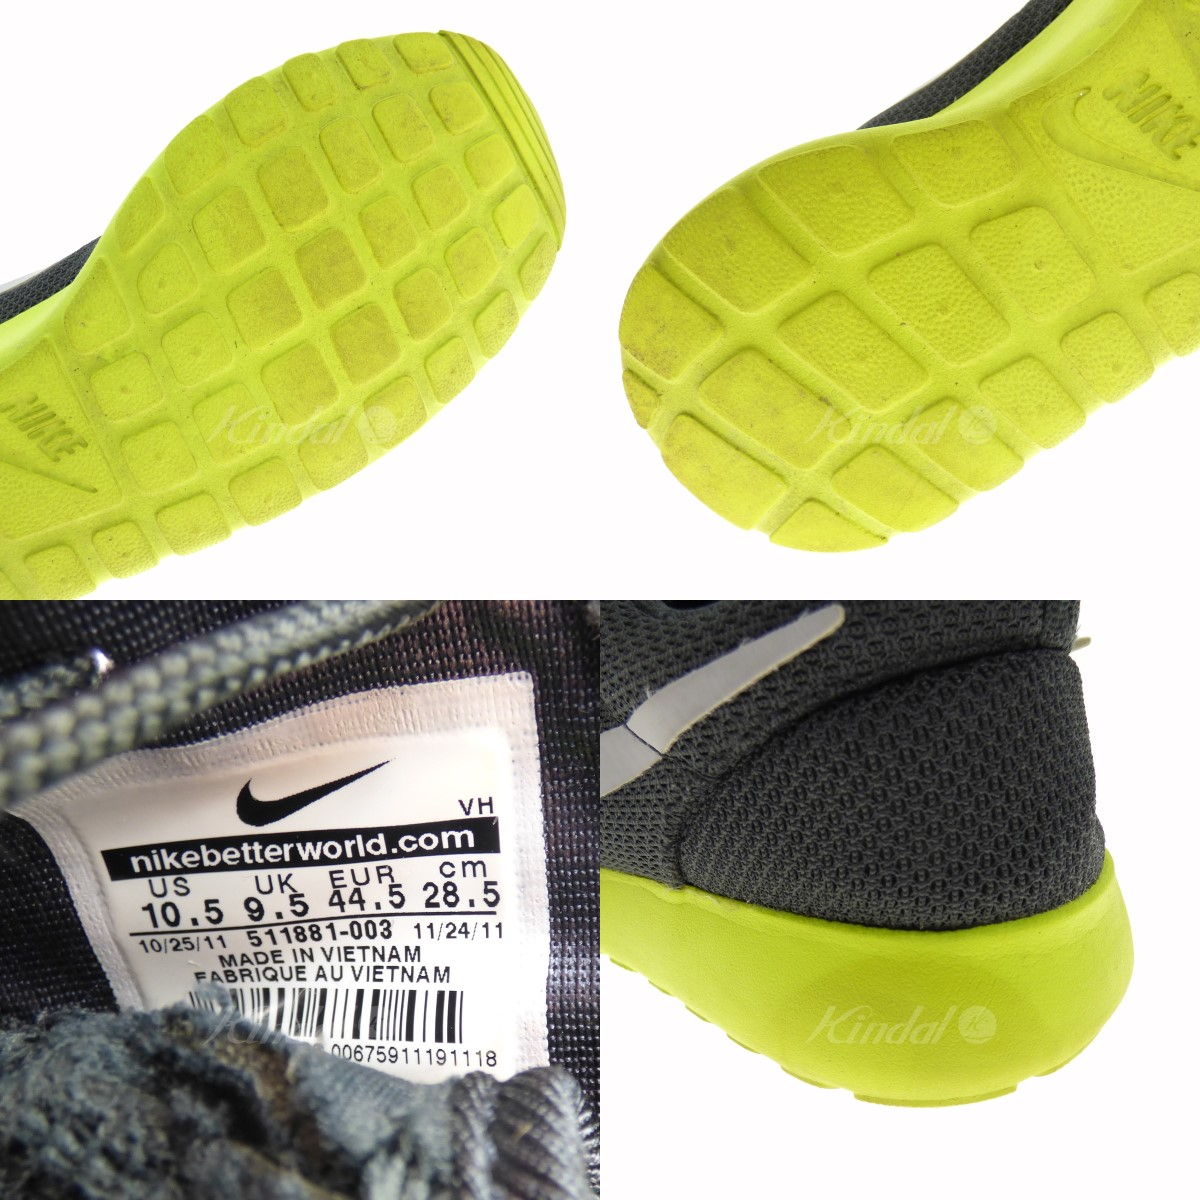 100% authentic 716d2 97eb0 ... hot nike roshe run sneakers 511881 003 gray x yellow size 28. 5cm nike  791bc